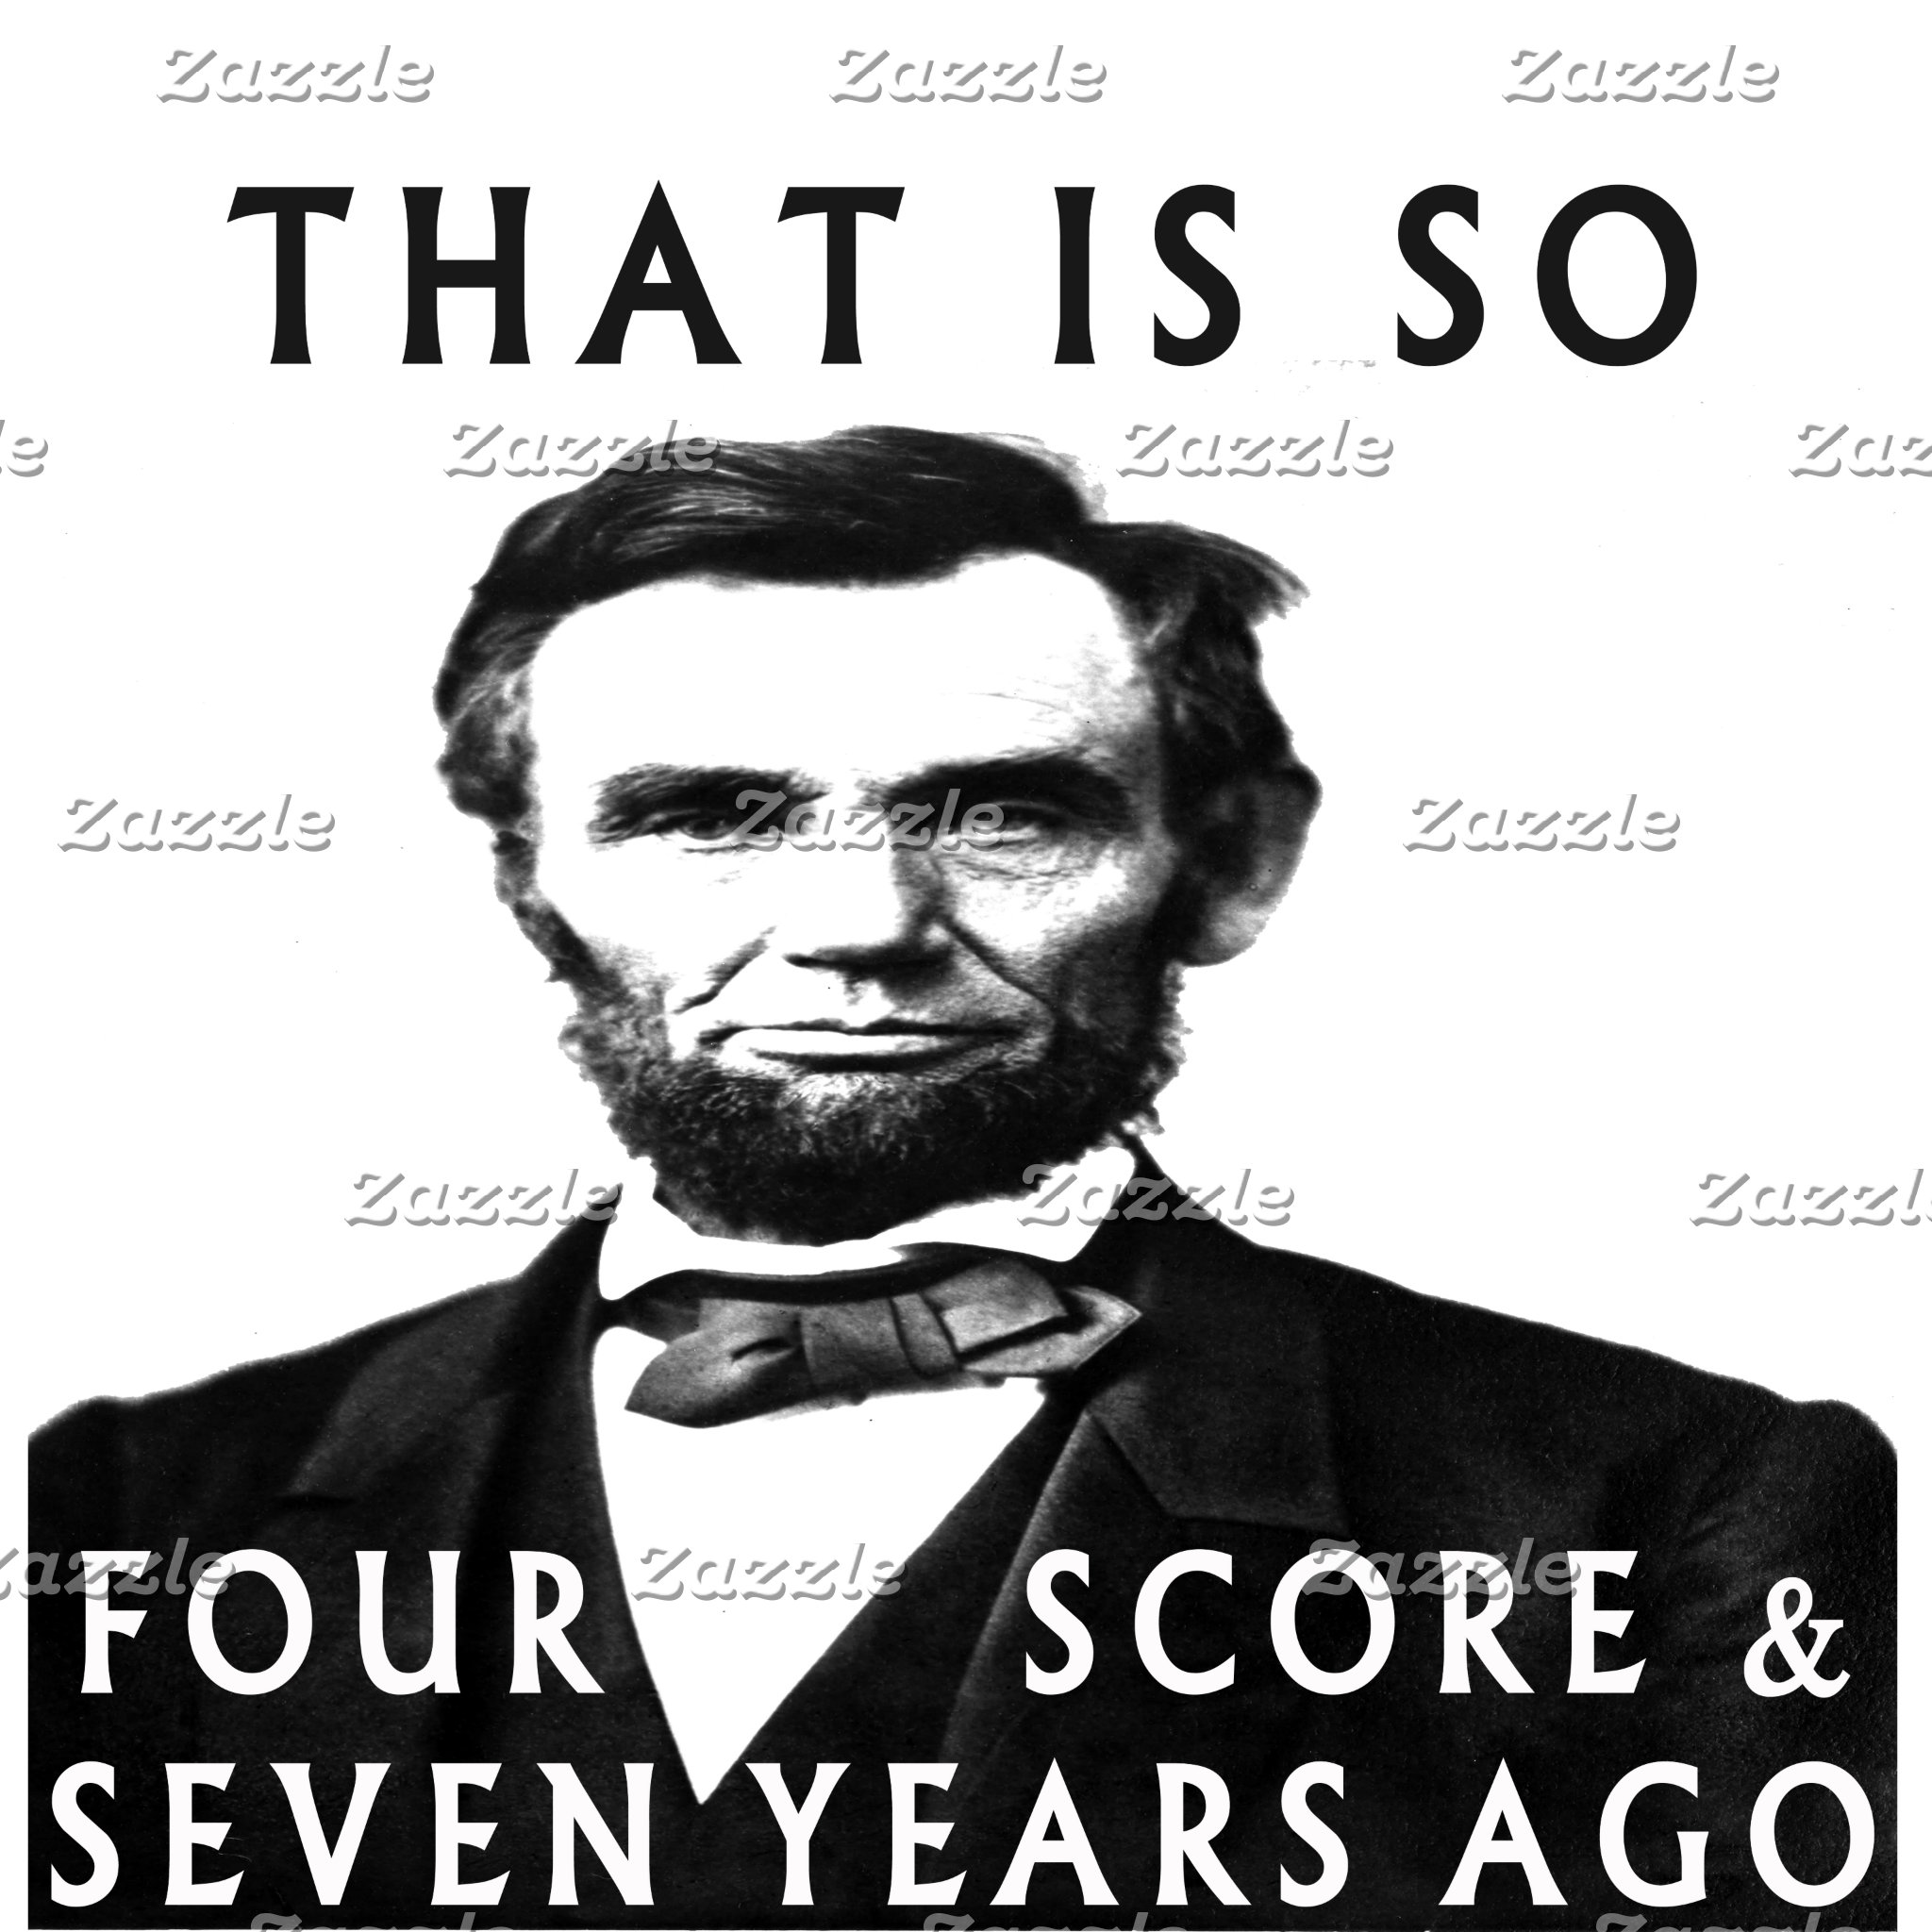 Abe Lincoln - That is so fourscore and seven years